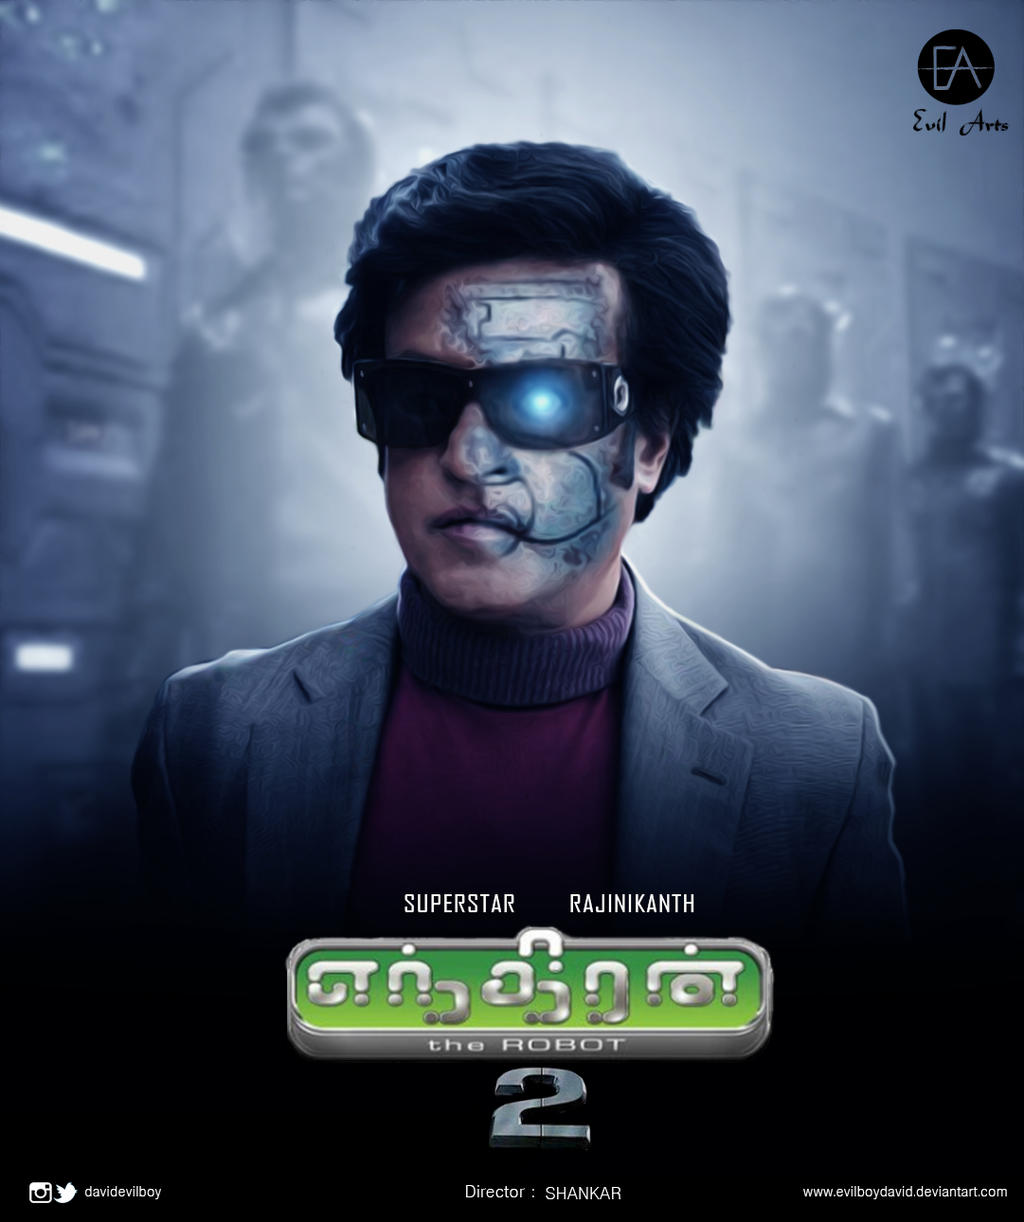 Enthiran 2 Unofficial Poster By Evilboydavid On DeviantArt